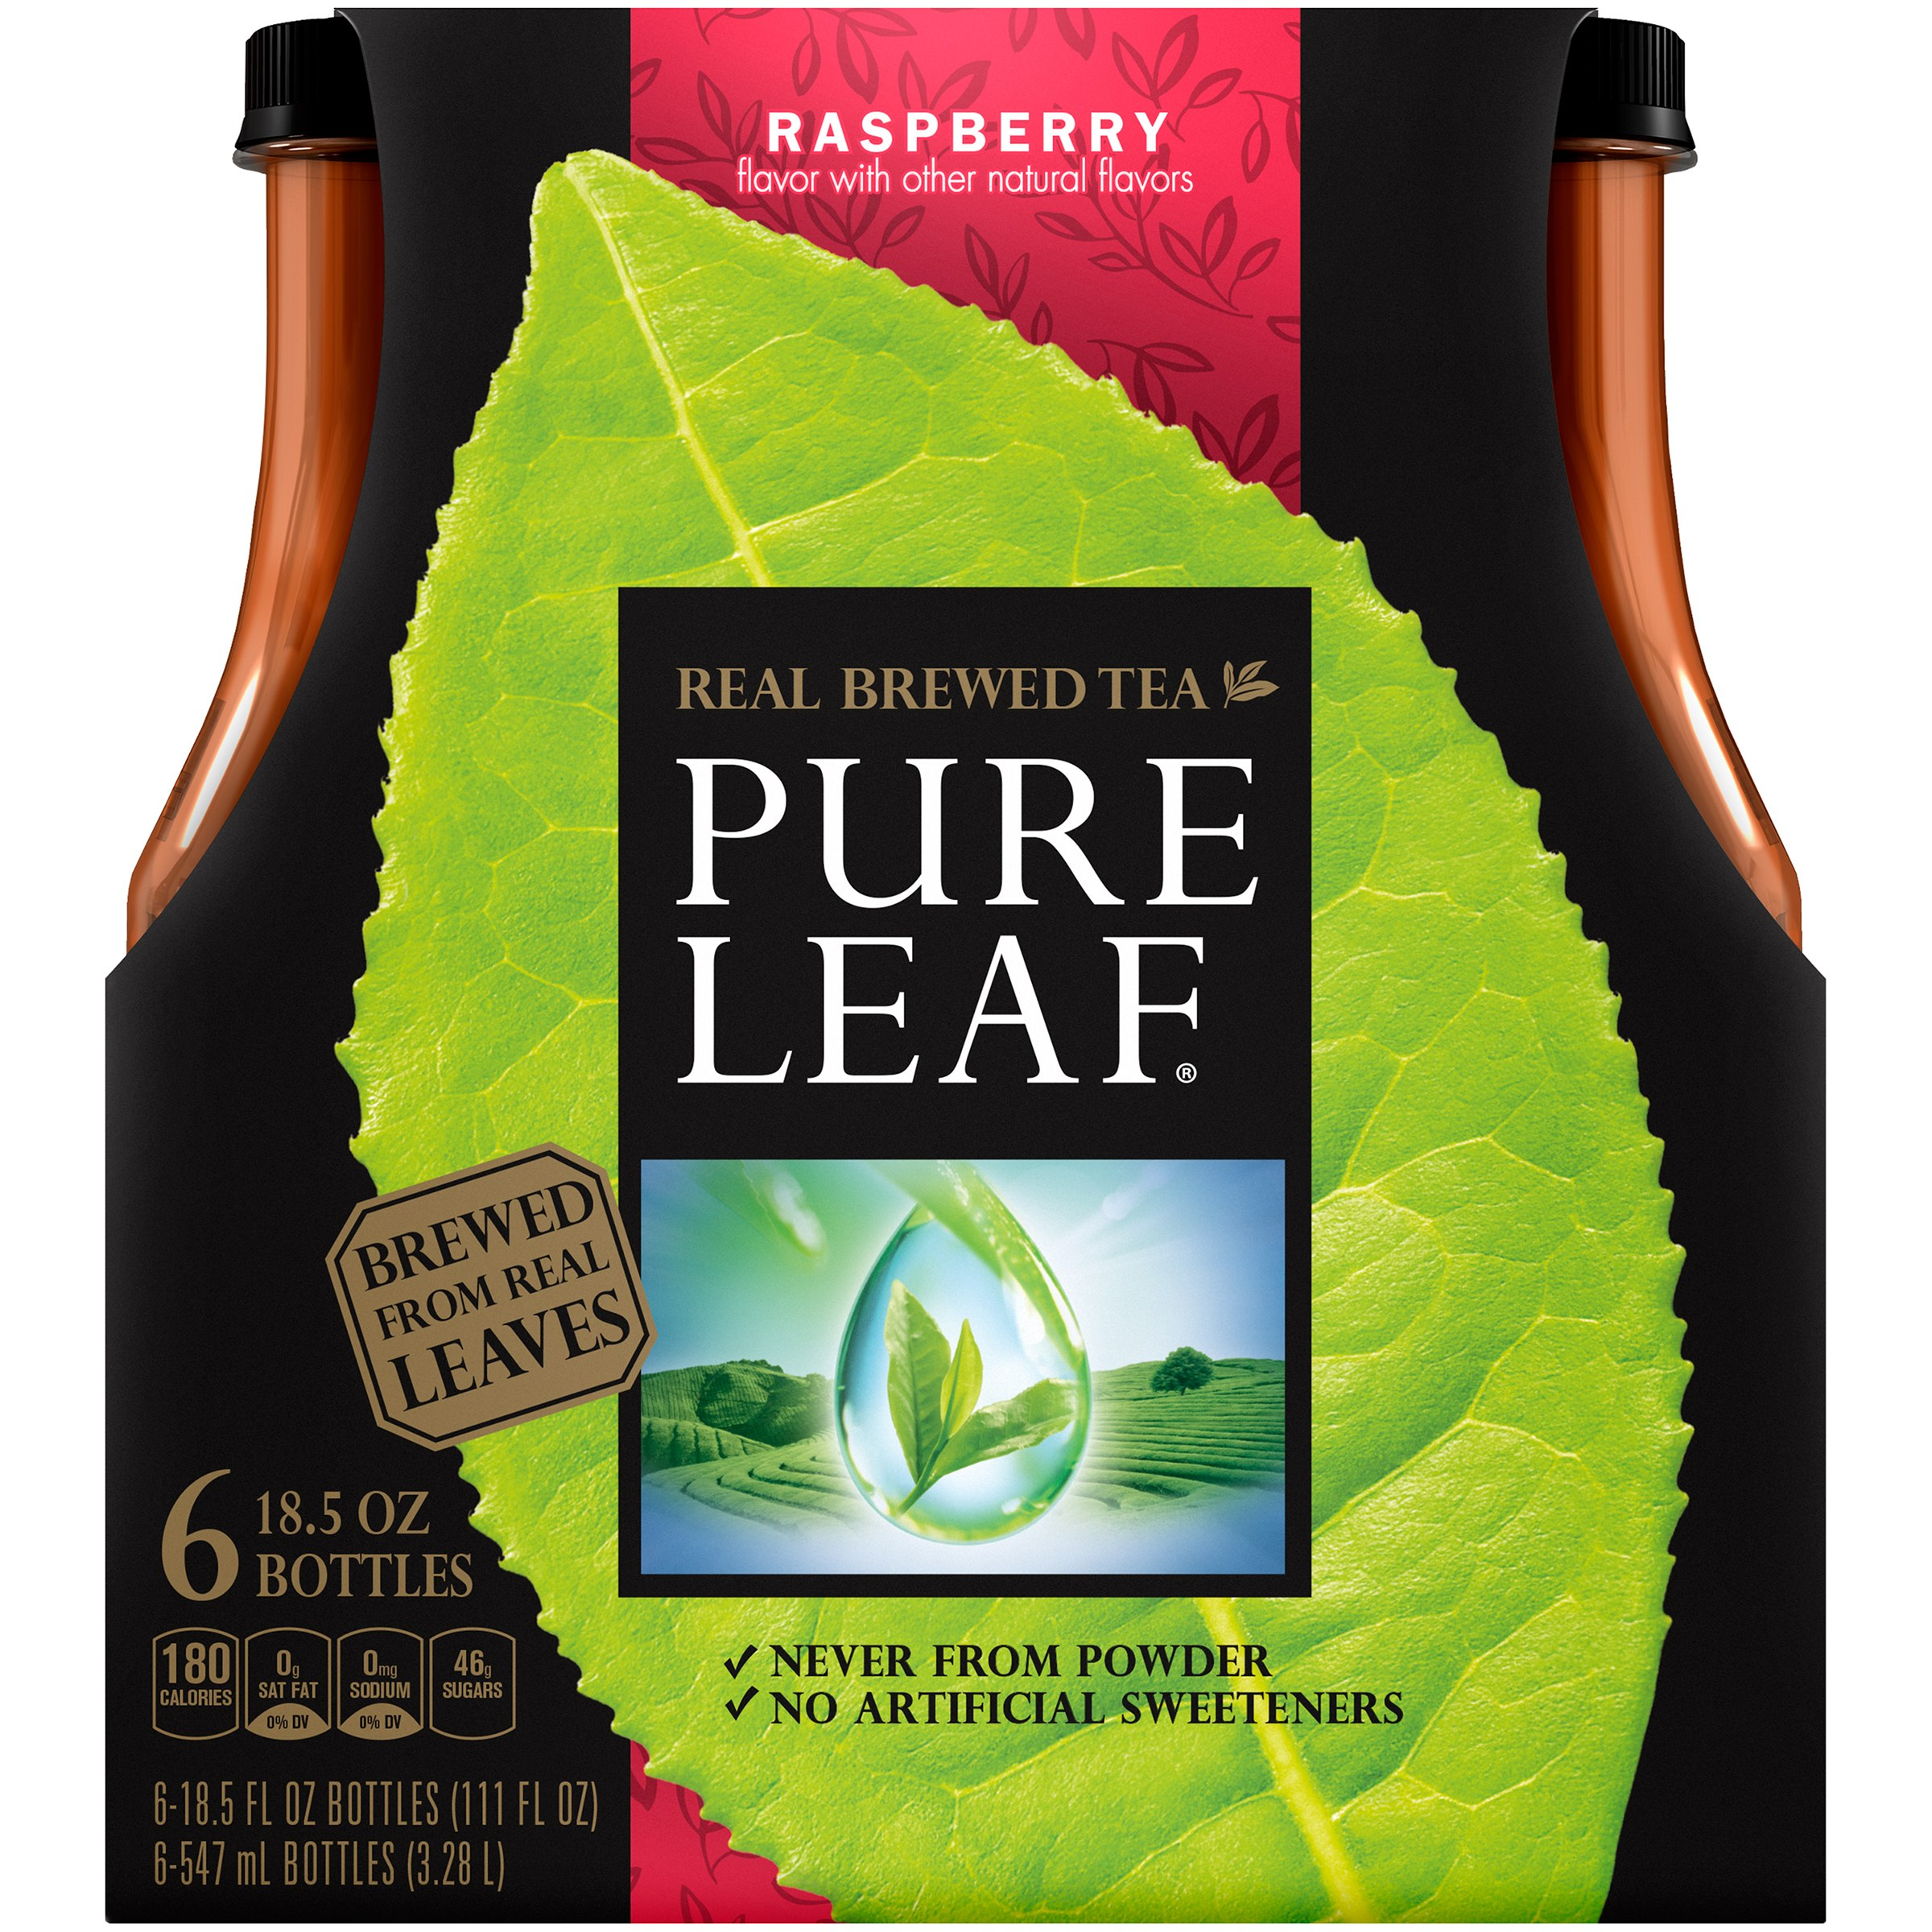 Pure Leaf Raspberry Iced Tea, 6 Count, 18.5 fl. oz. Bottles